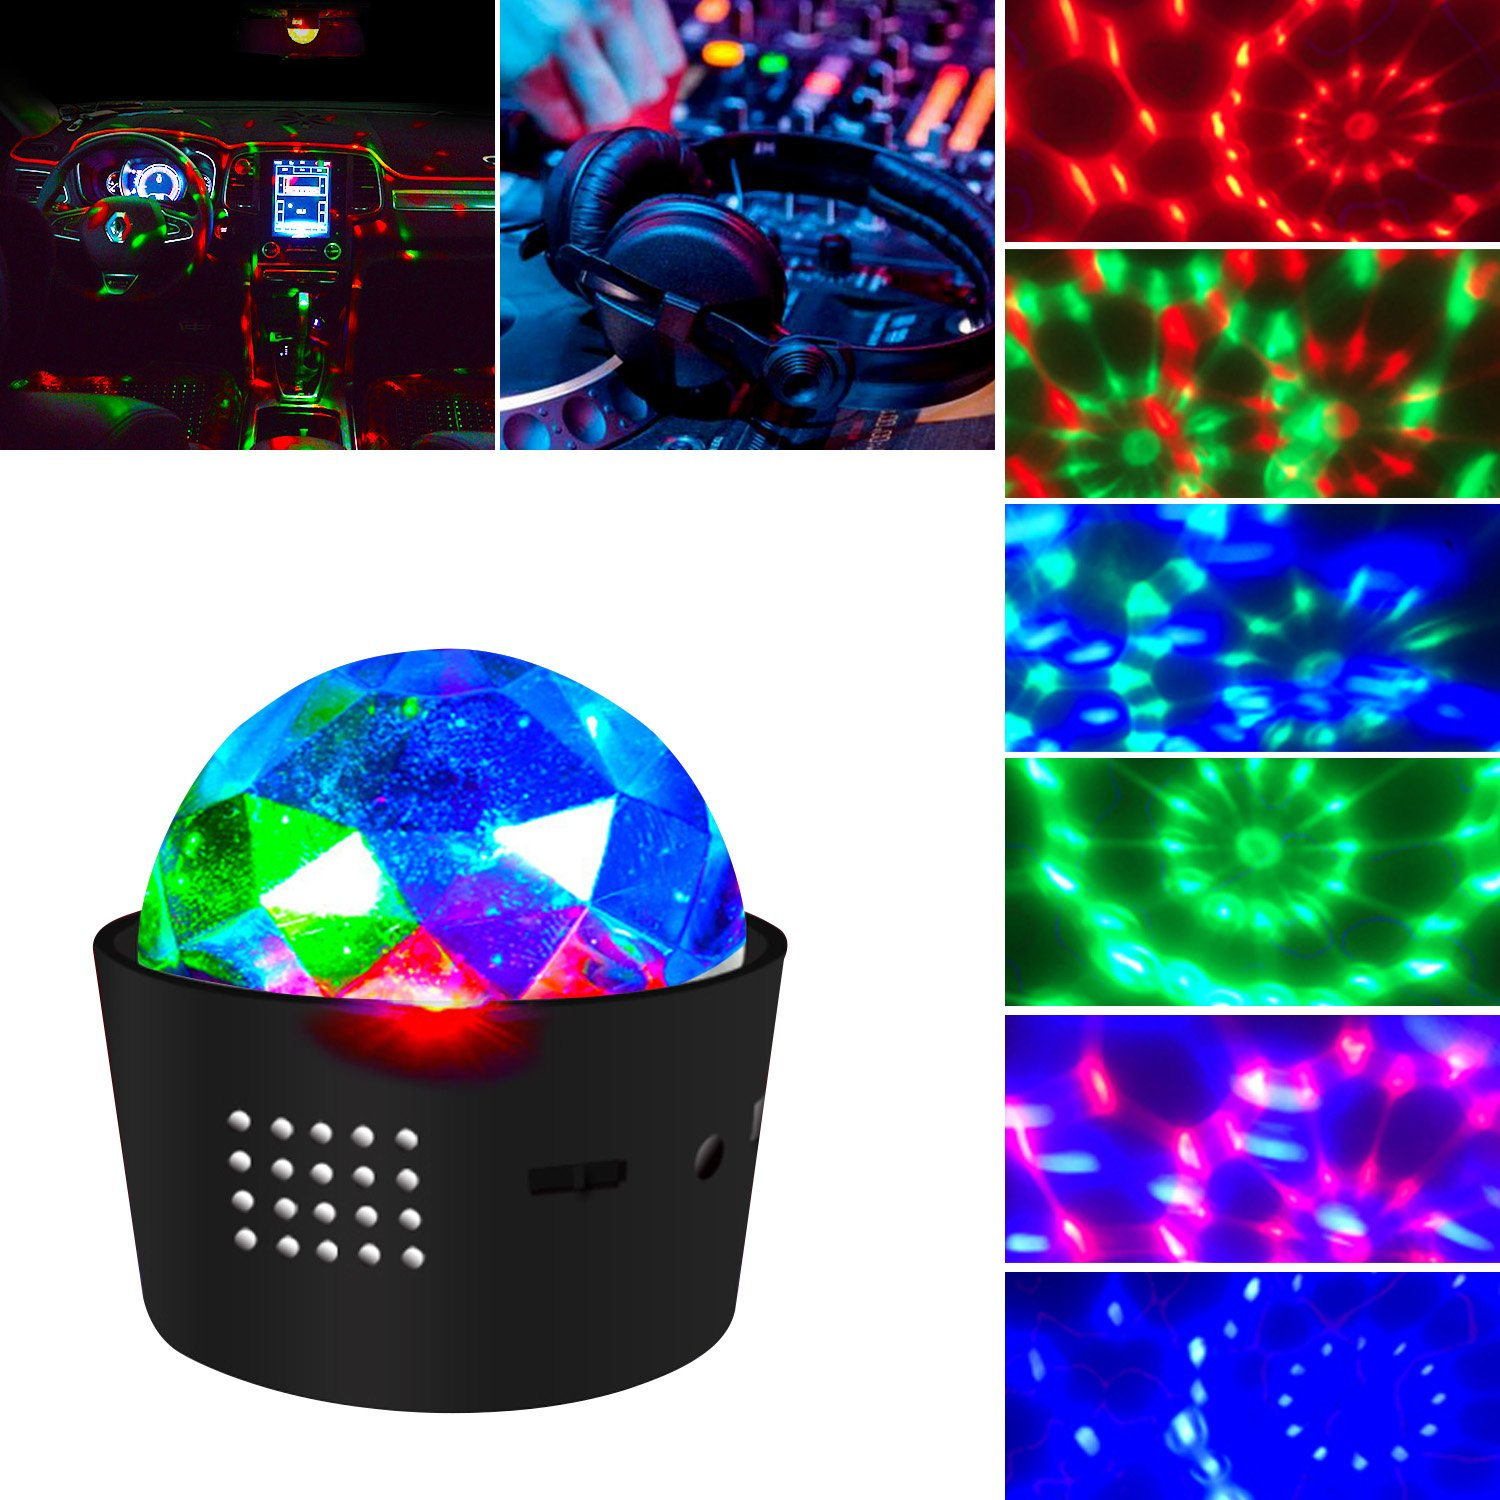 Portable Sound Activated DJ Light 3W Battery Operated Disco Ball Lamp Wireless 3 Colors Stage Lights for Home/Festival/Party/Club/Wedding (Mode1) by Firestrive